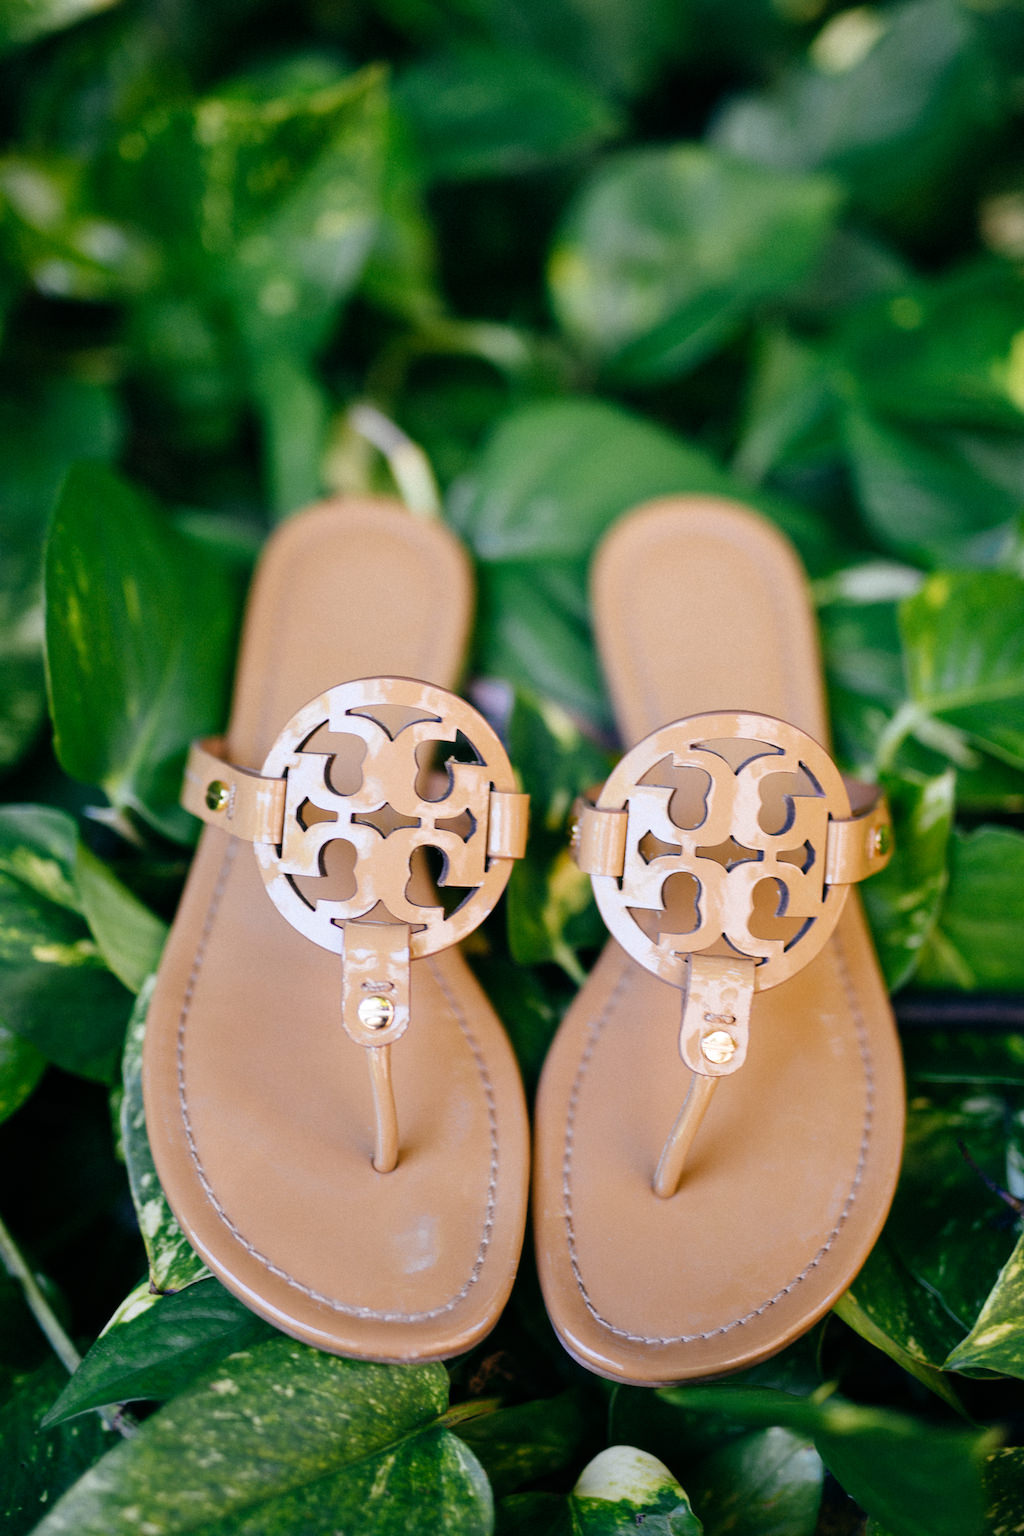 Nude Tory Burch Sandals Wedding Shoes